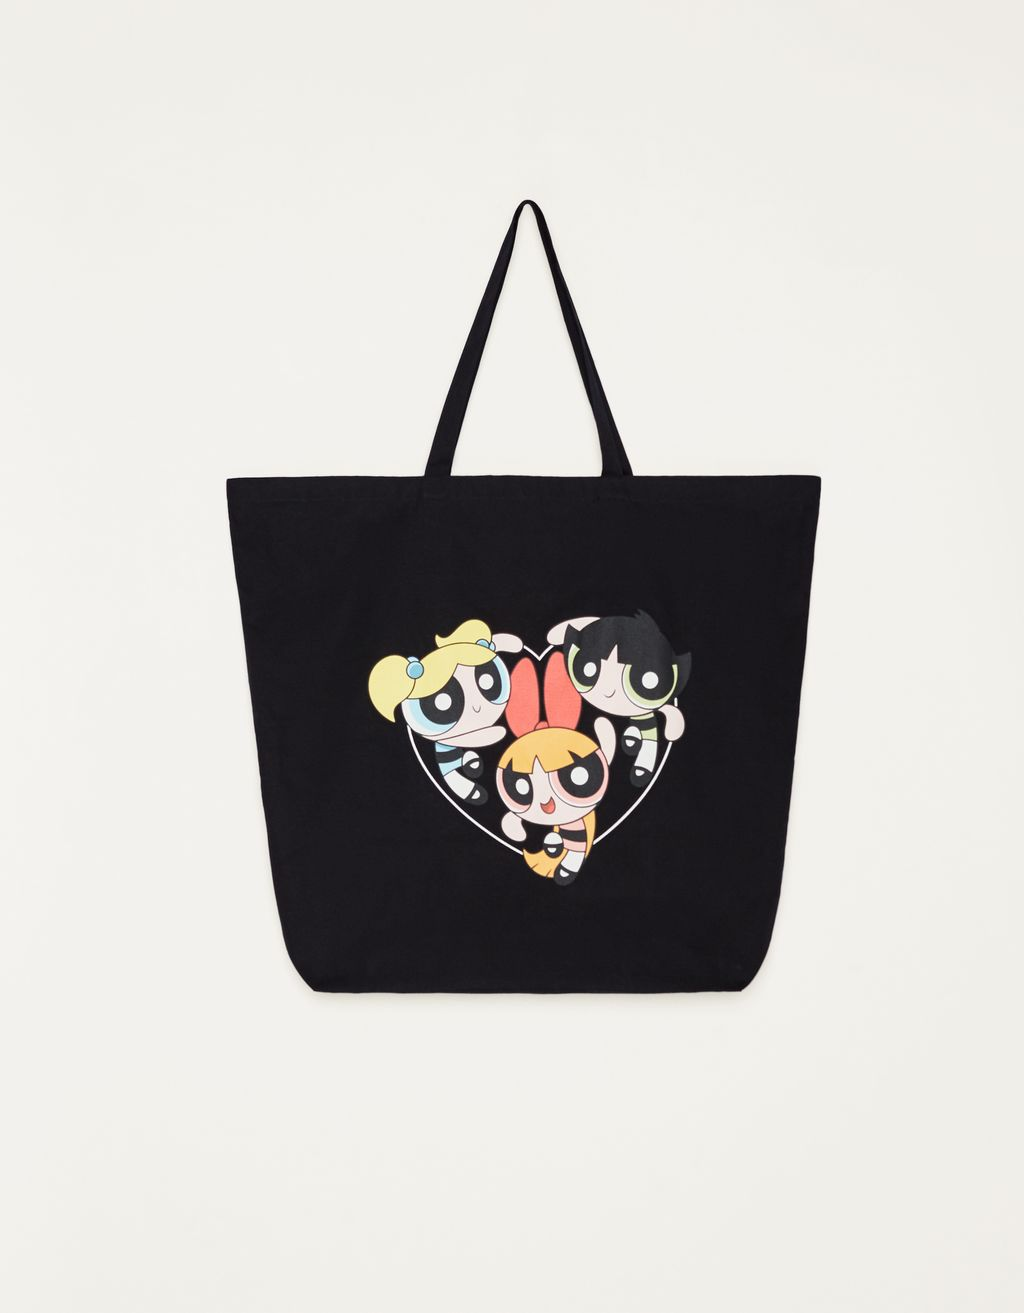 Сумка-шопер The Powerpuff Girls x Bershka